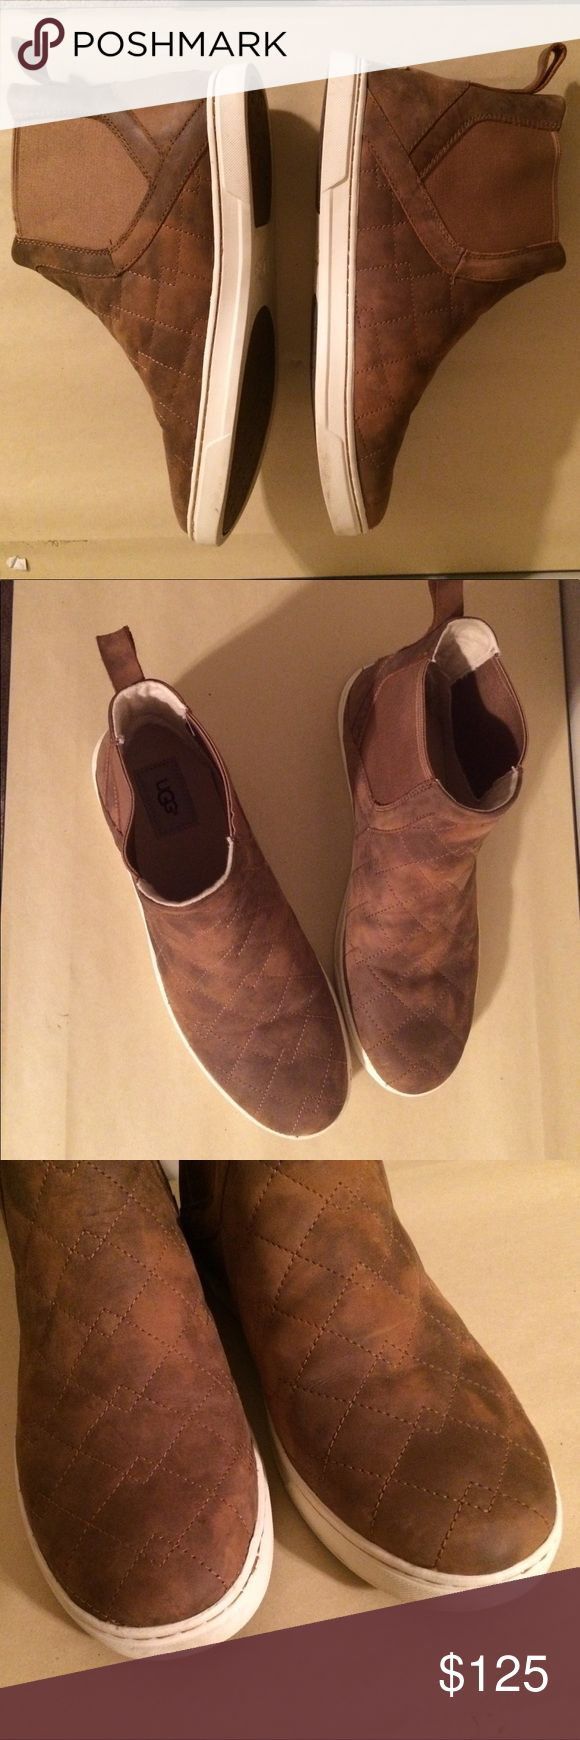 UGG bootie/boots/leather shoe Manufactured distressed with elastic stretch sides for easy slip on and comfort. Dillard's has these exact shoes for $200 and they sell out wayy before they go on sale! A shoe that you can compare to Clarks, Born or Dansko on the comfort and quality scale. 20% off 2/more items UGG Shoes